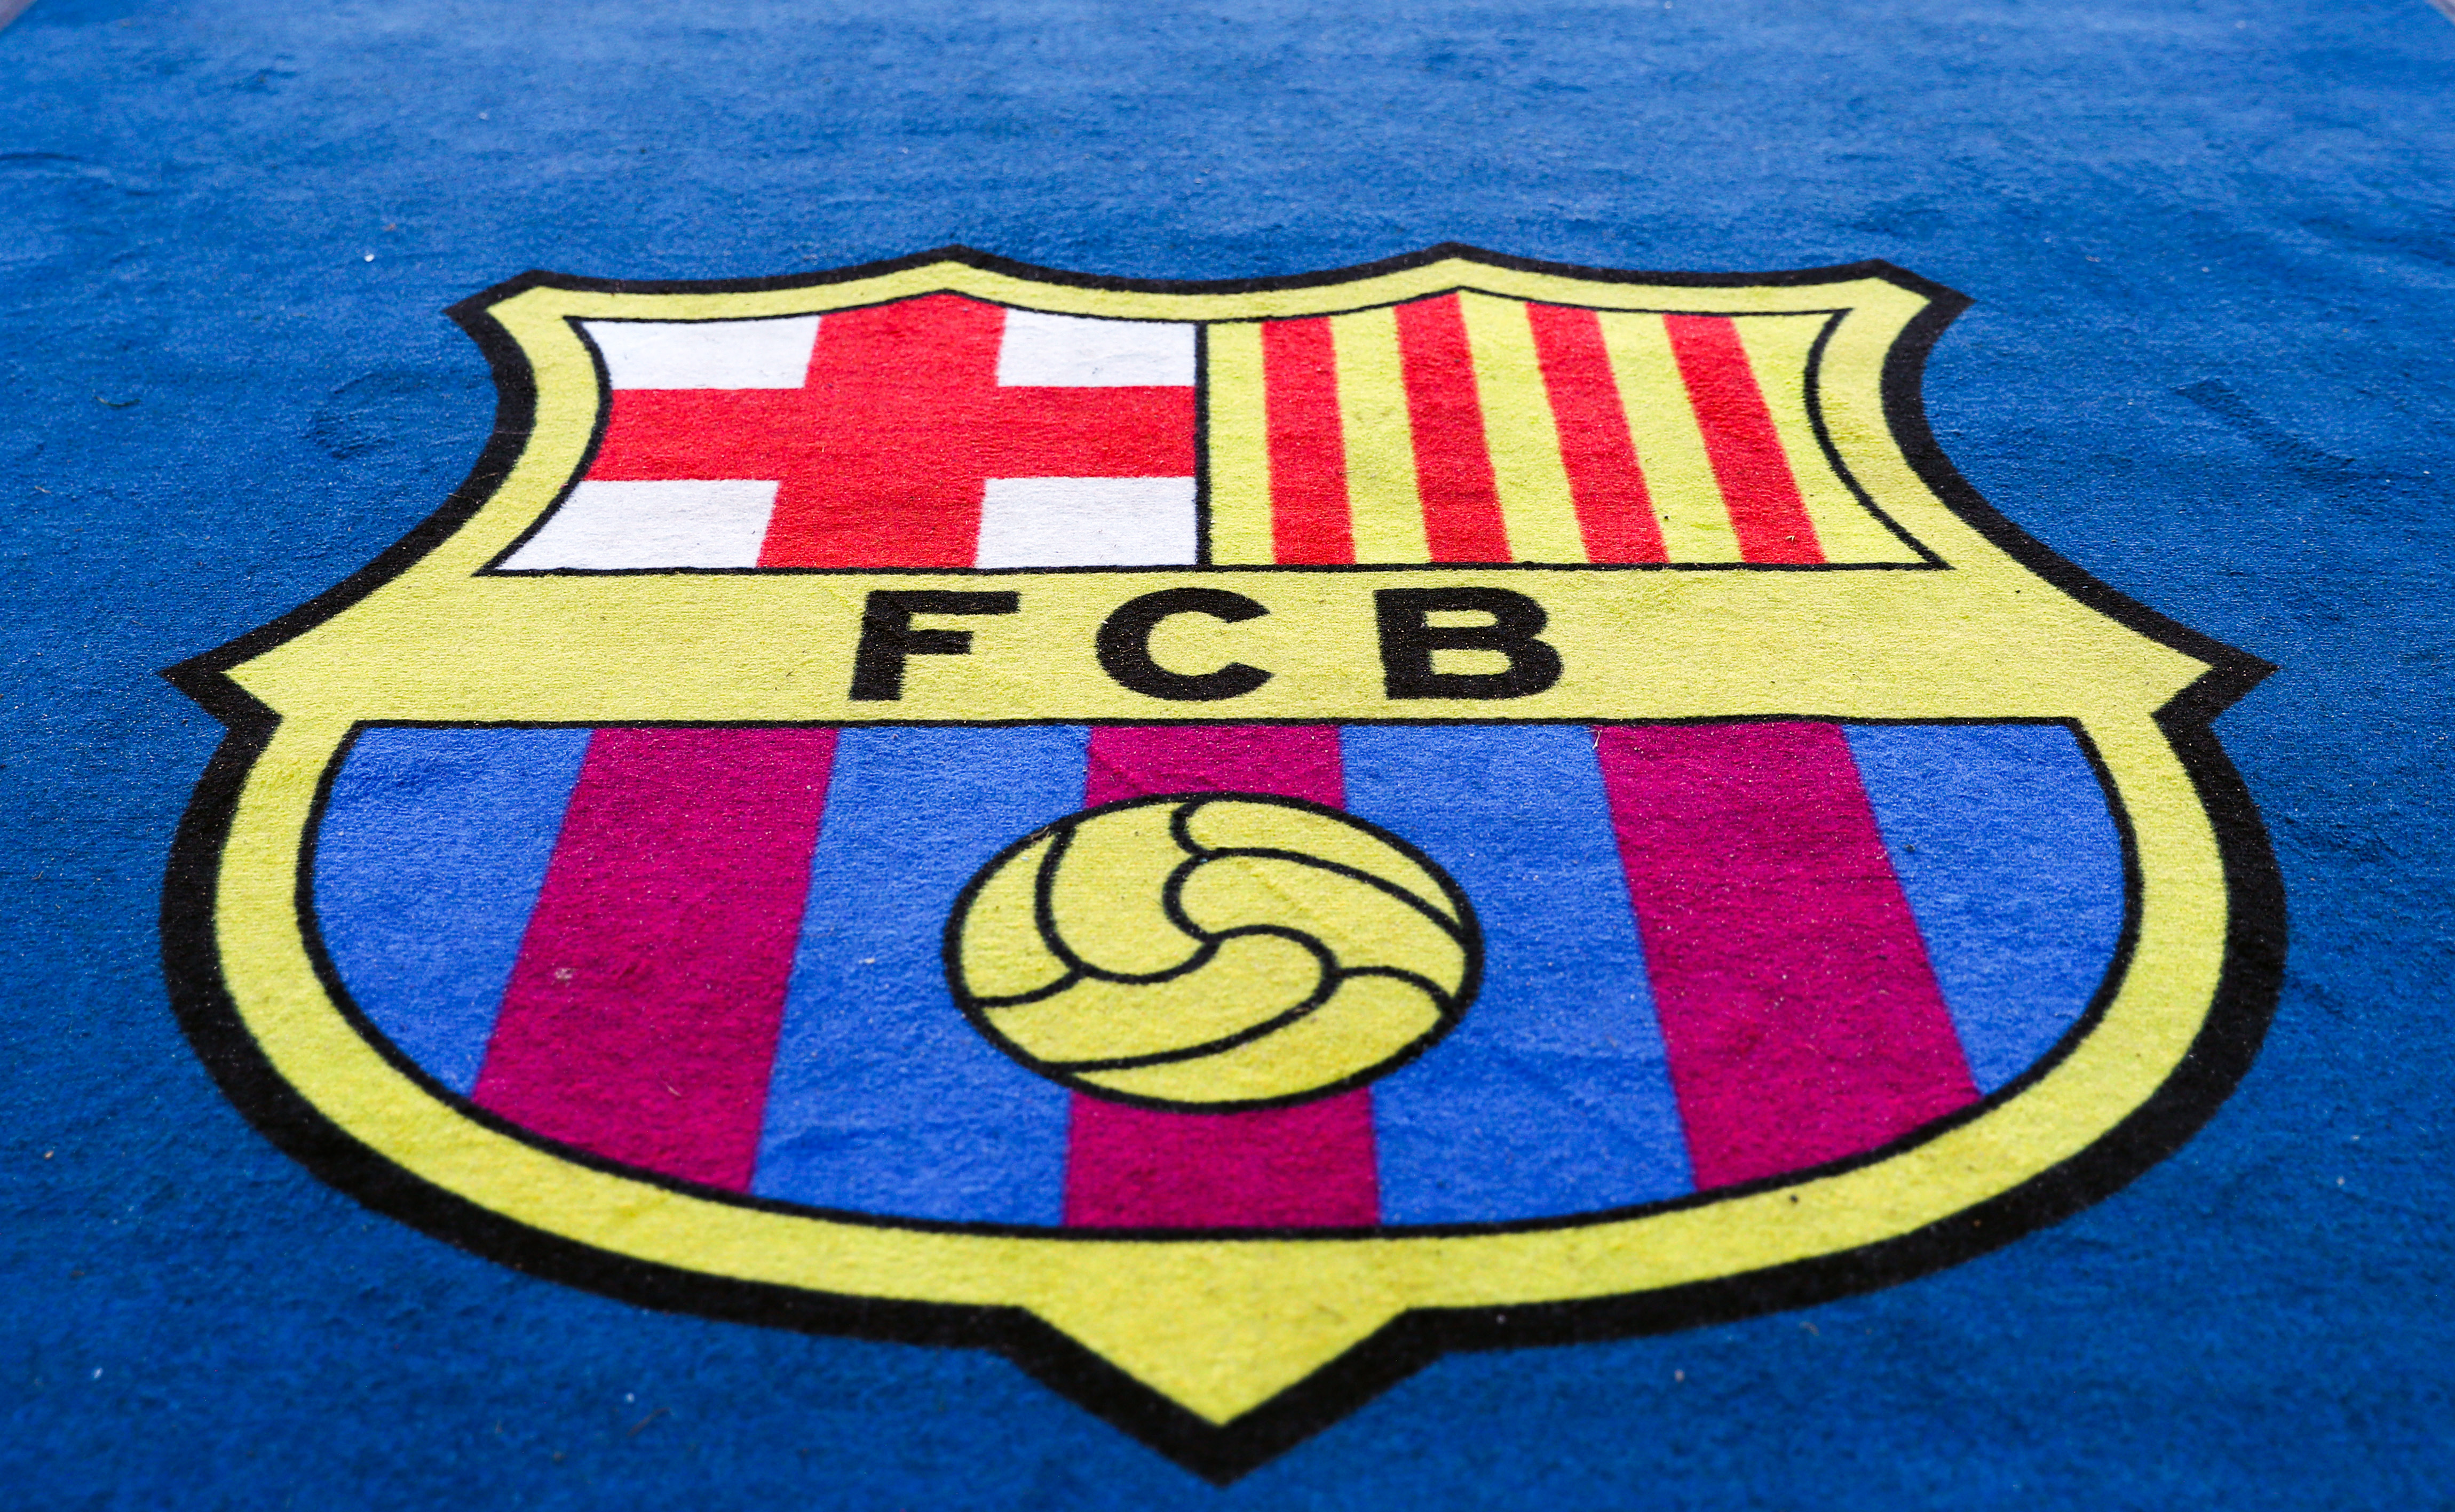 Barcelona remains committed to Super League, saying it would be 'historical error' to pull out